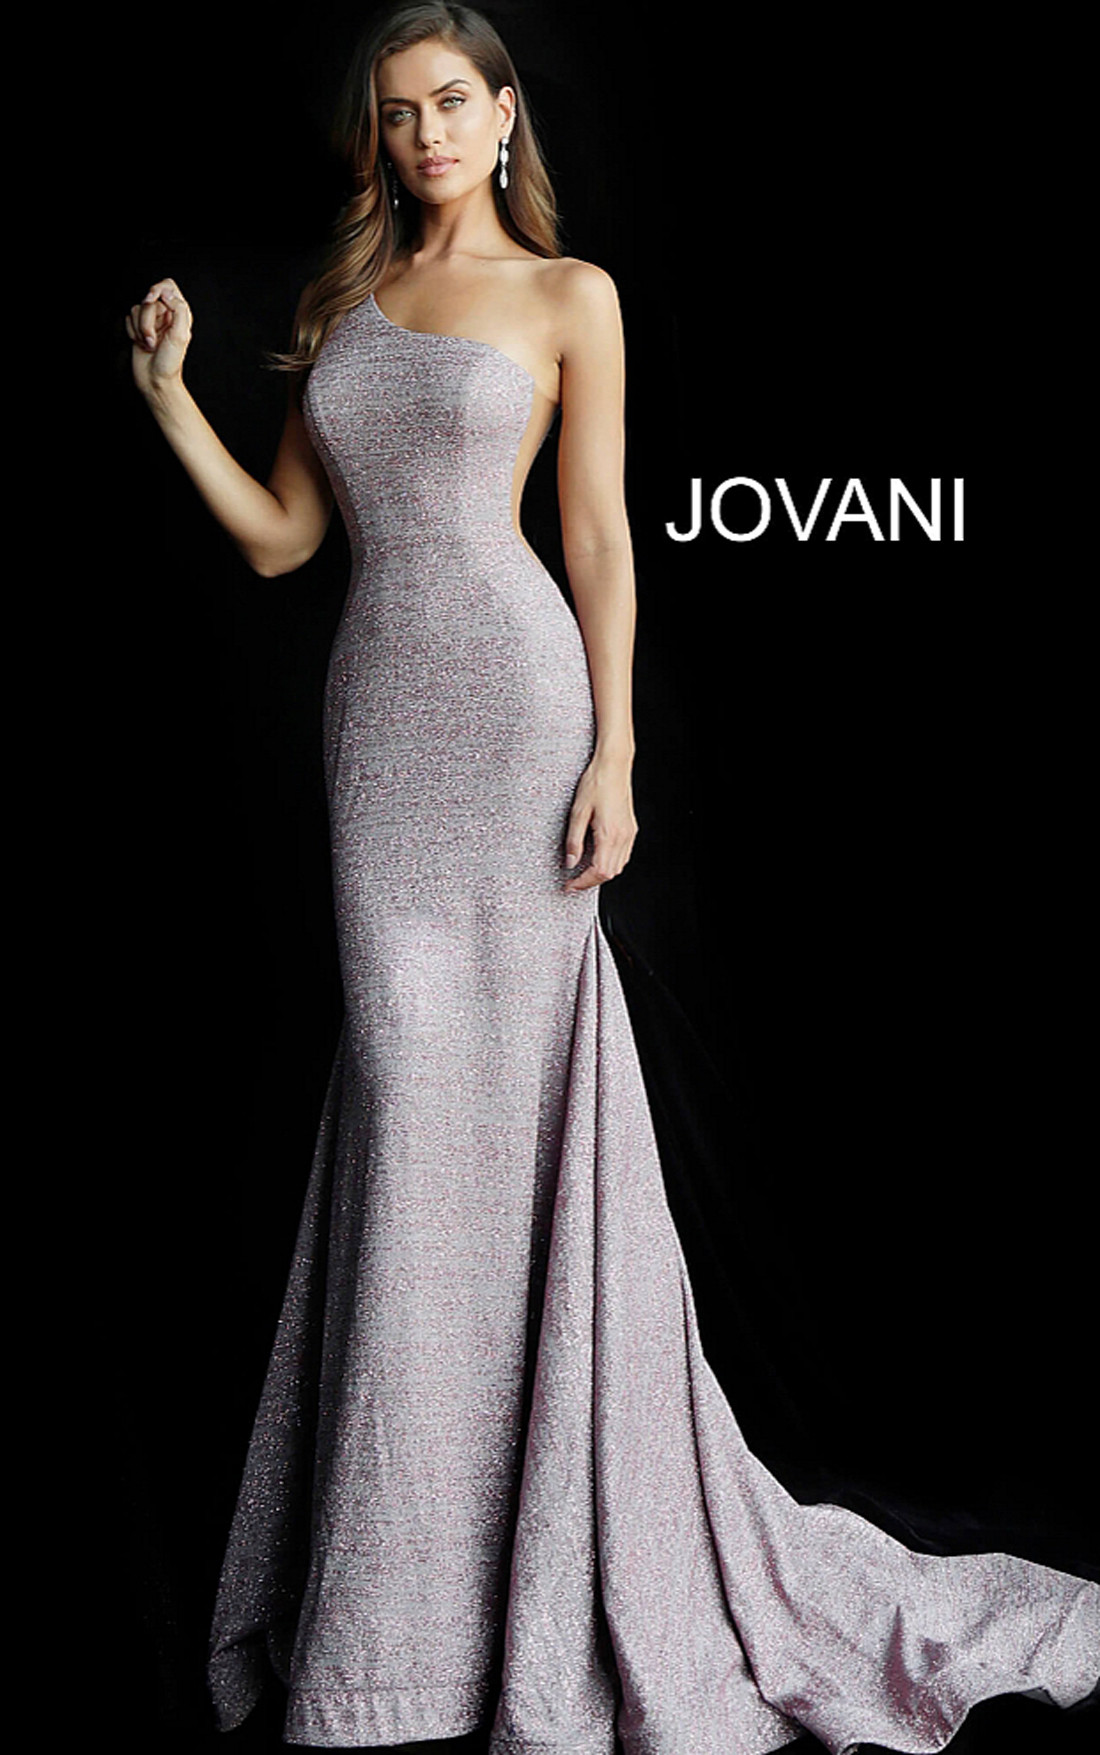 Jovani - Mauve One Shoulder Sleeveless Glitter Dress (67650)